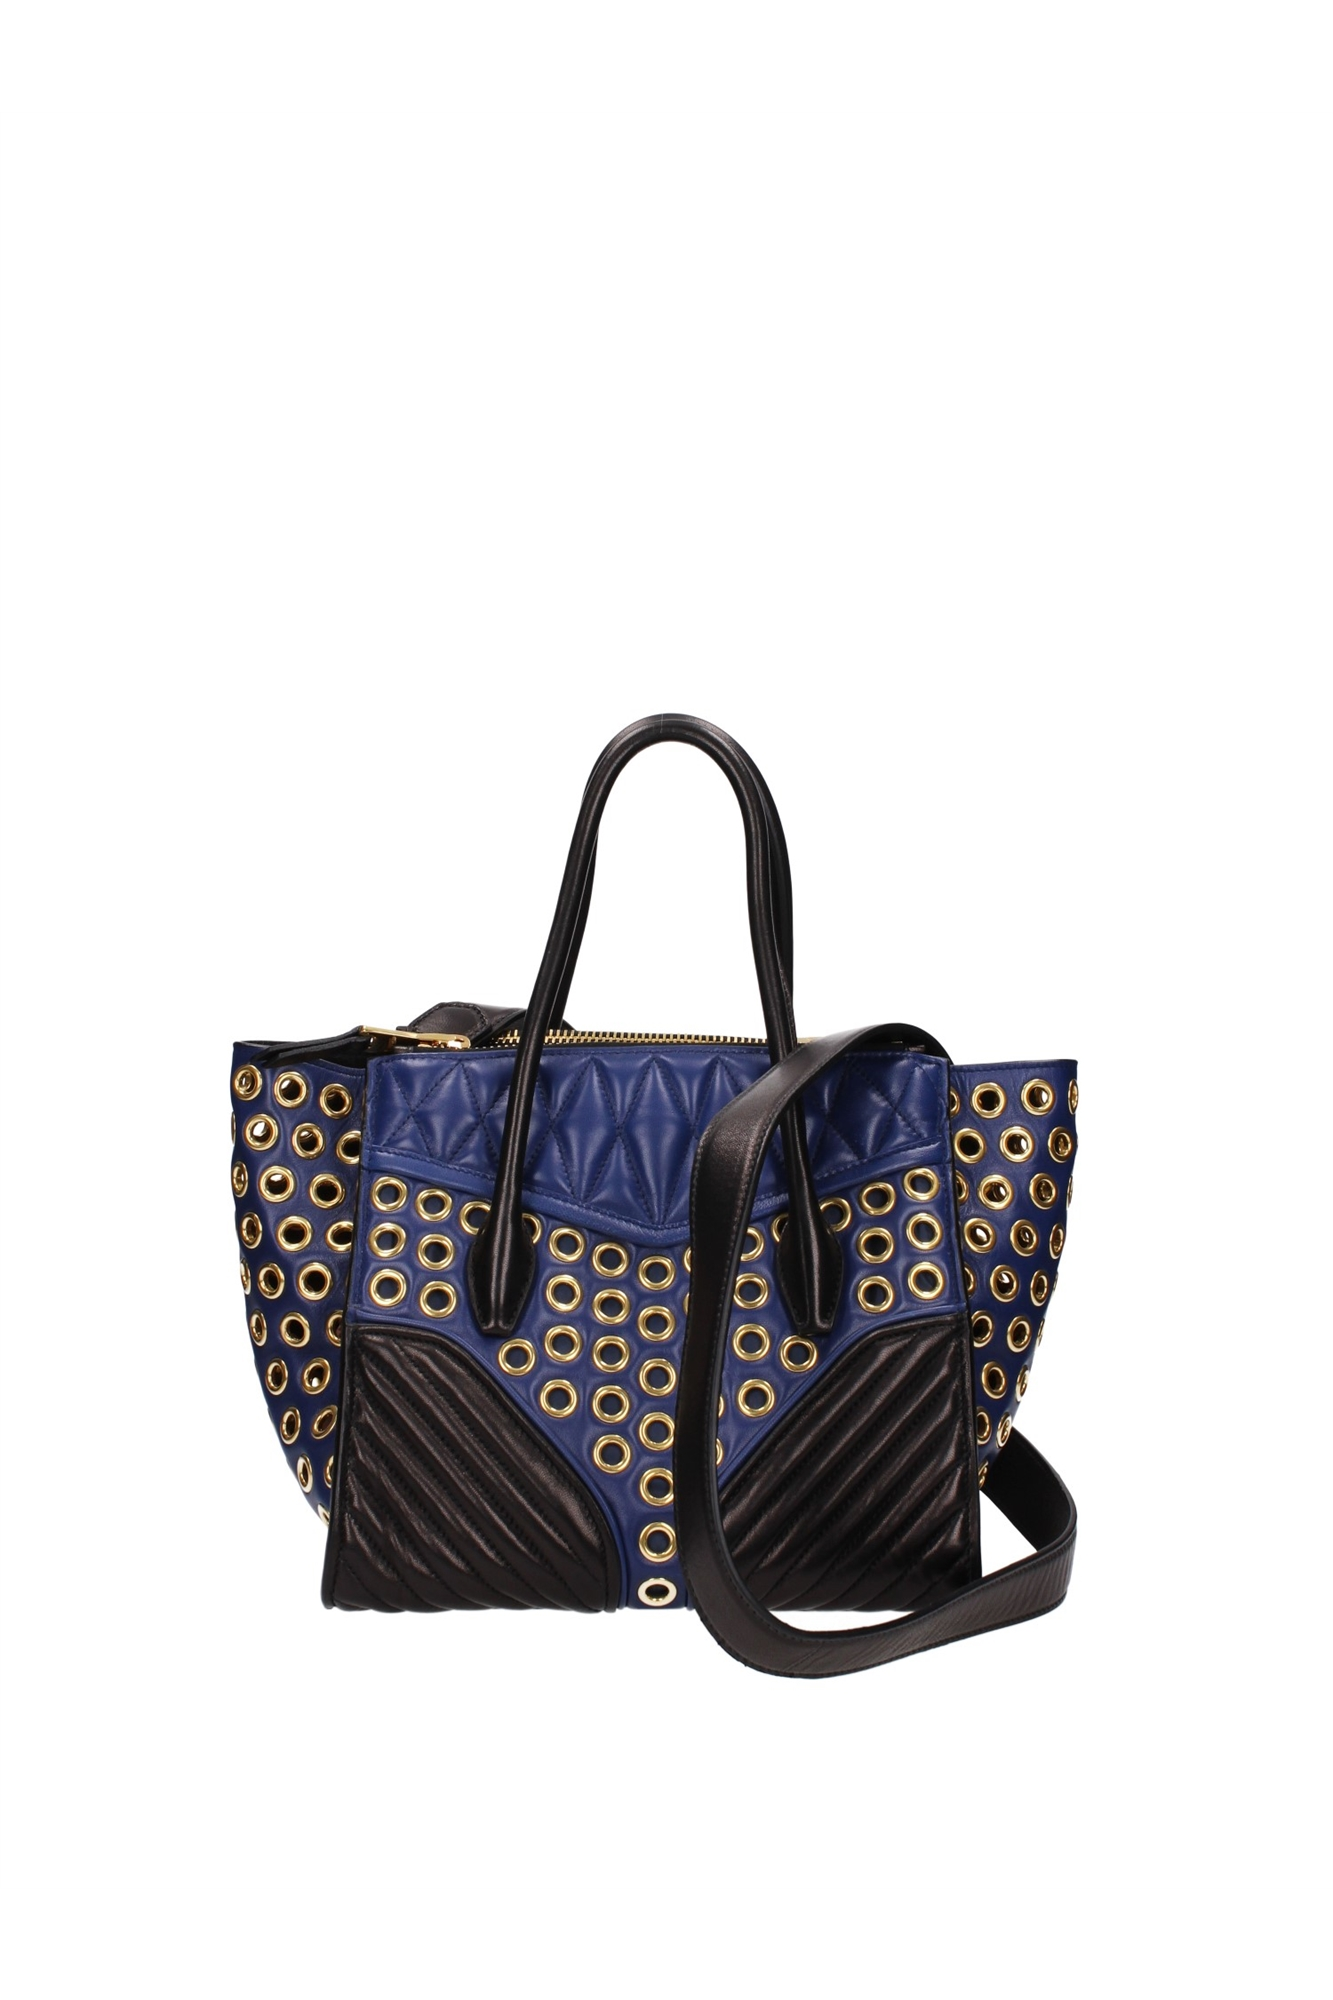 New Women Bag Denim Handbag Large Capacity Blue Shoulder Bag Weave Women